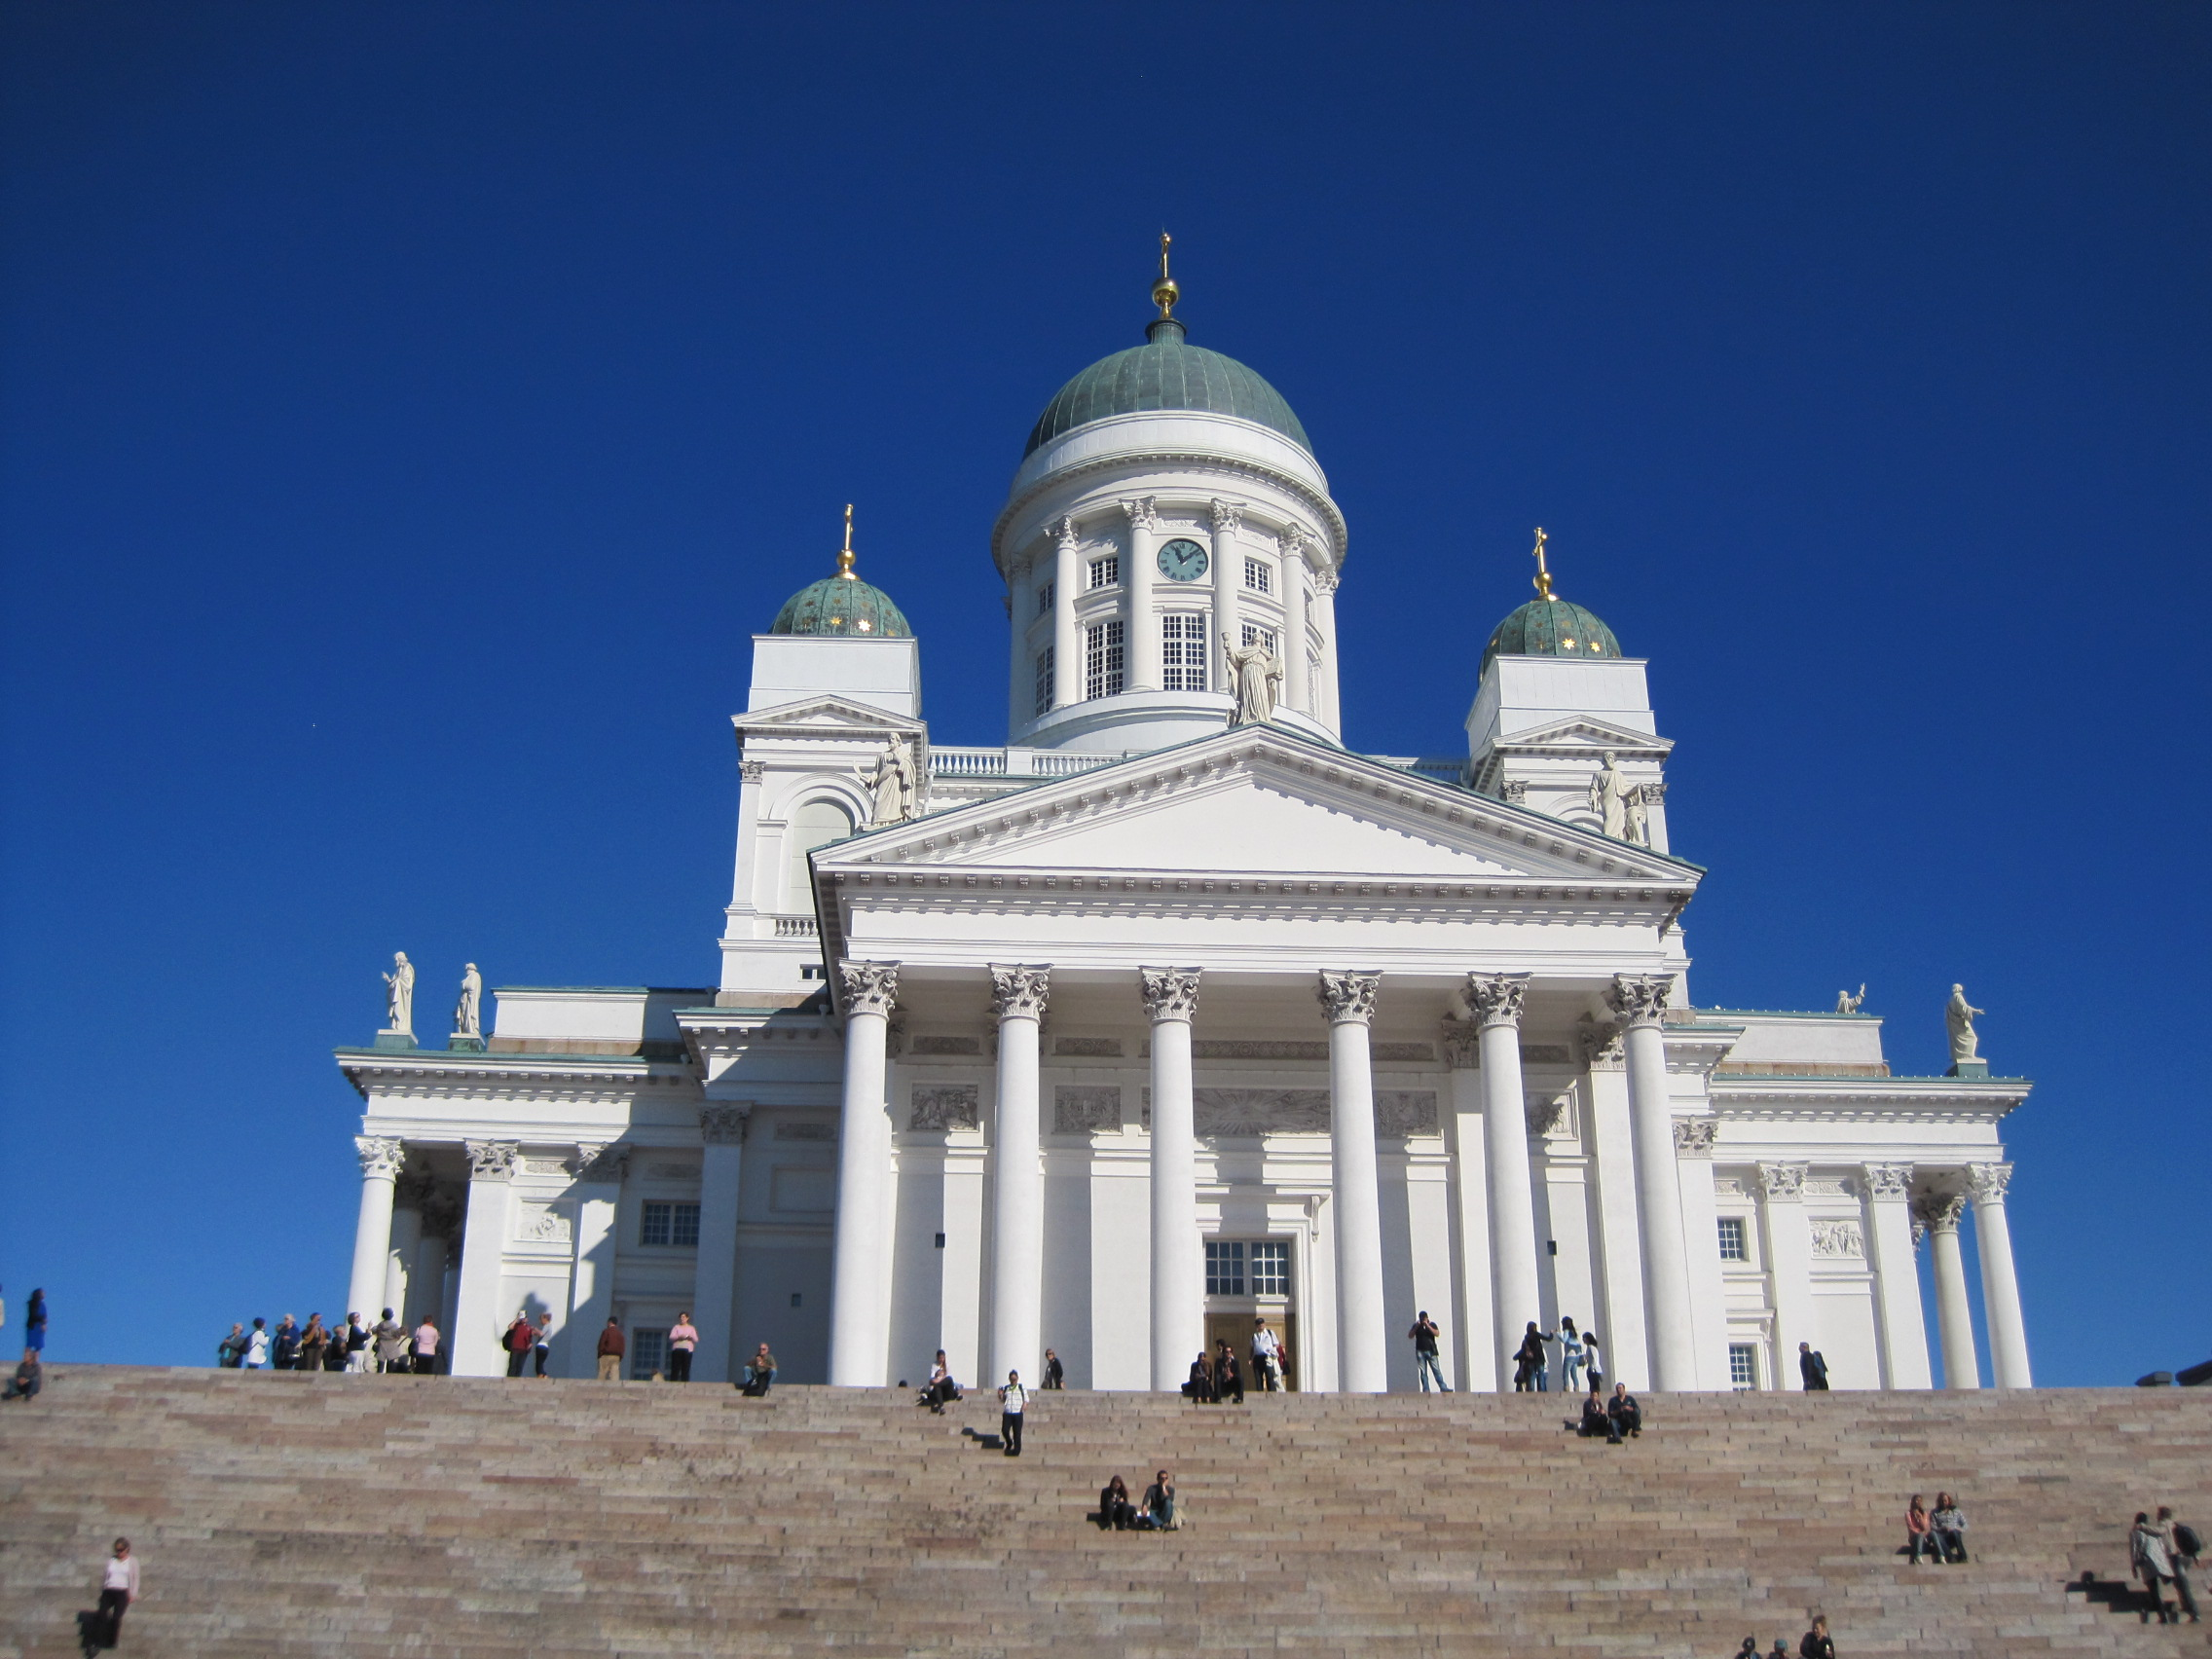 Tuomiokirkko The white neoclassical Lutheran Cathedral of Helsinki.